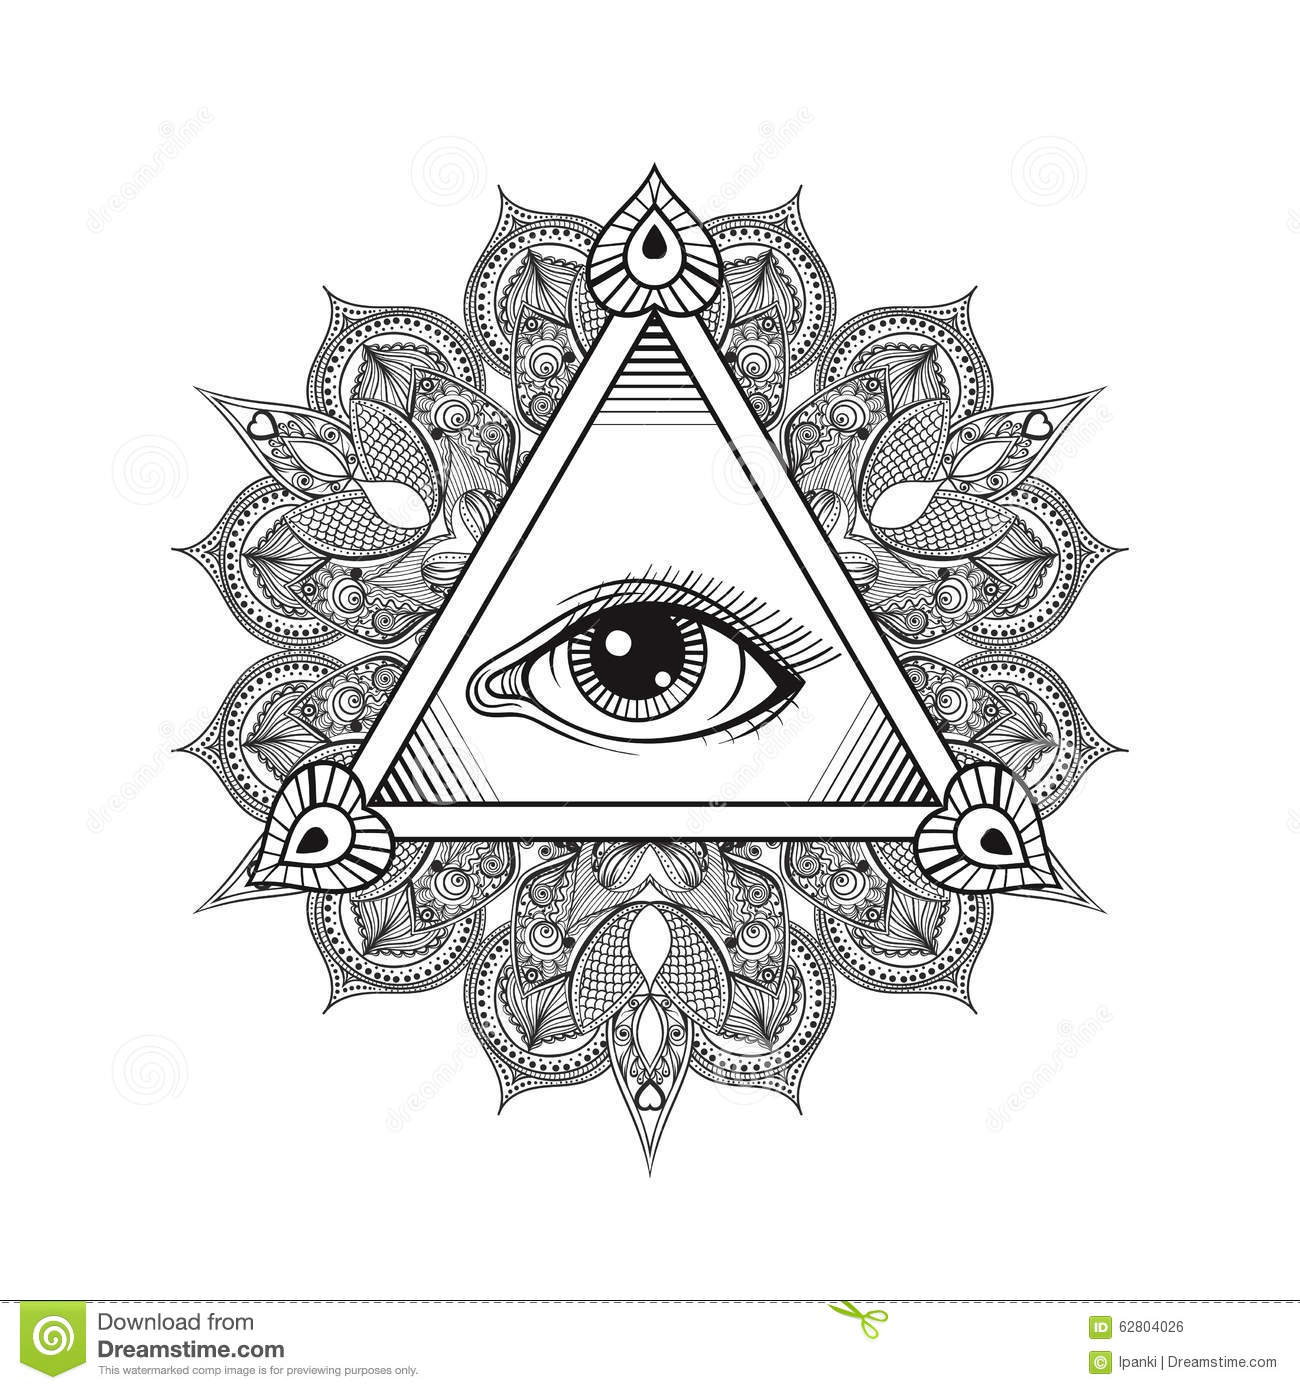 203ed460be44d Vector All seeing eye pyramid symbol. Tattoo design. Vintage hand drawn  freedom, spiritual, occultism and mason sign in doodle style.